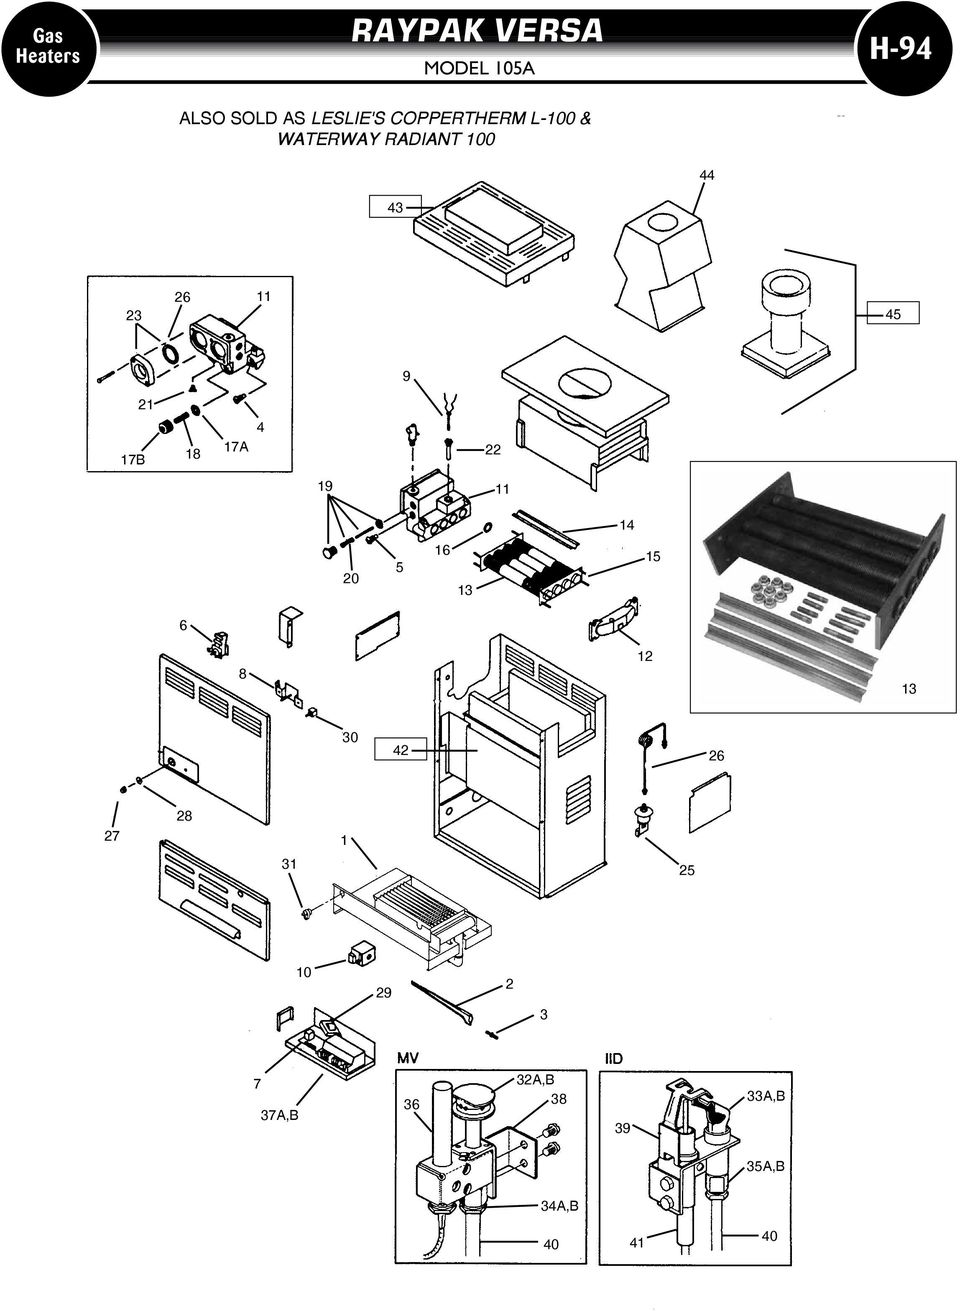 raypak heaters gas heaters h 90 guide to most mon parts e z find 1995 Heater Diagram 17b 18 17a 4 22 19 11 14 20 5 16 13 15 6 8 12